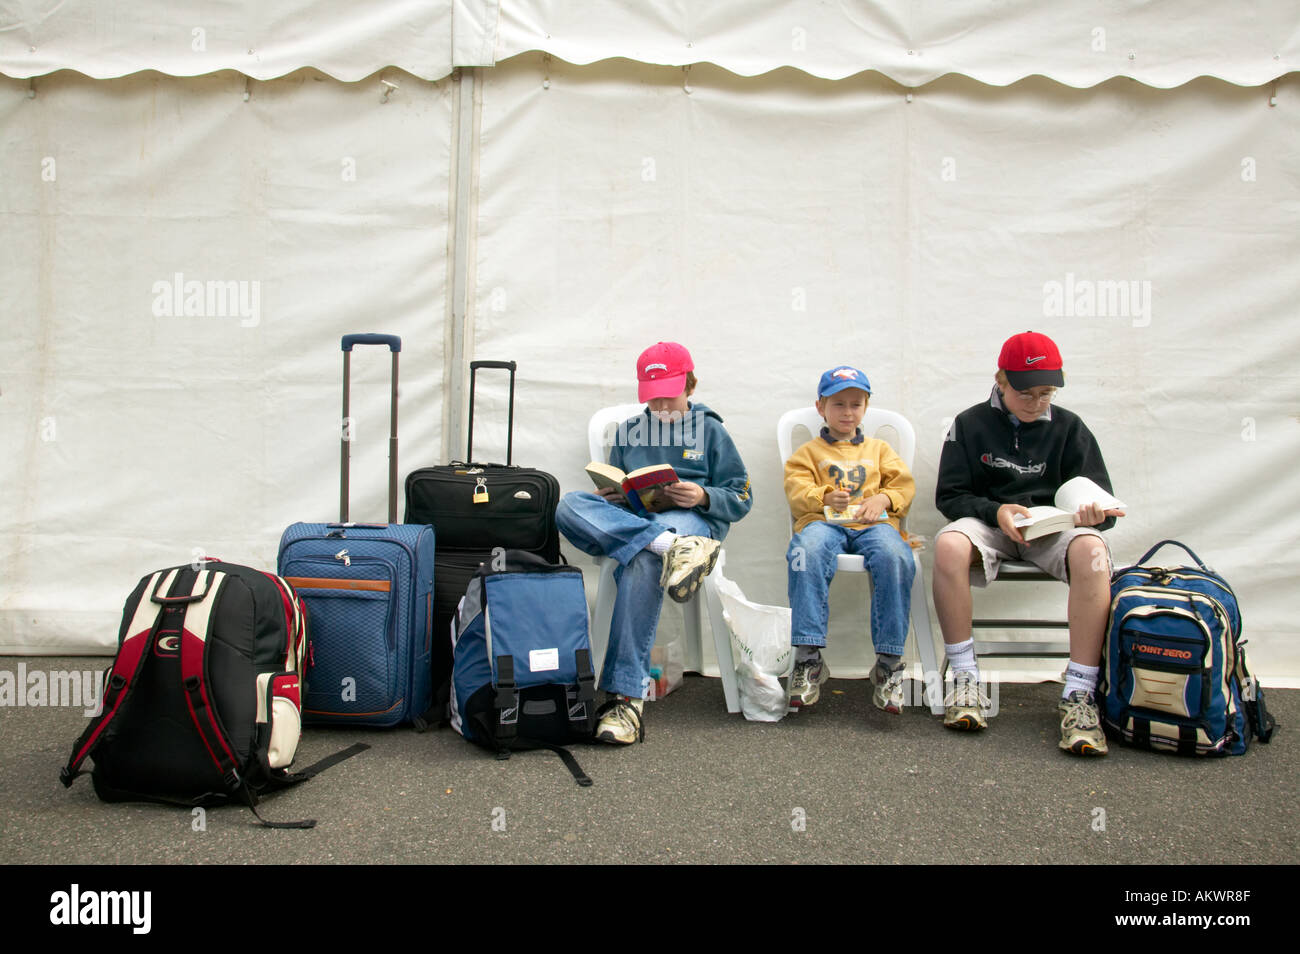 Three children wait with their bags during a strike at Heathrow Terminal Four London UK 2005 - Stock Image